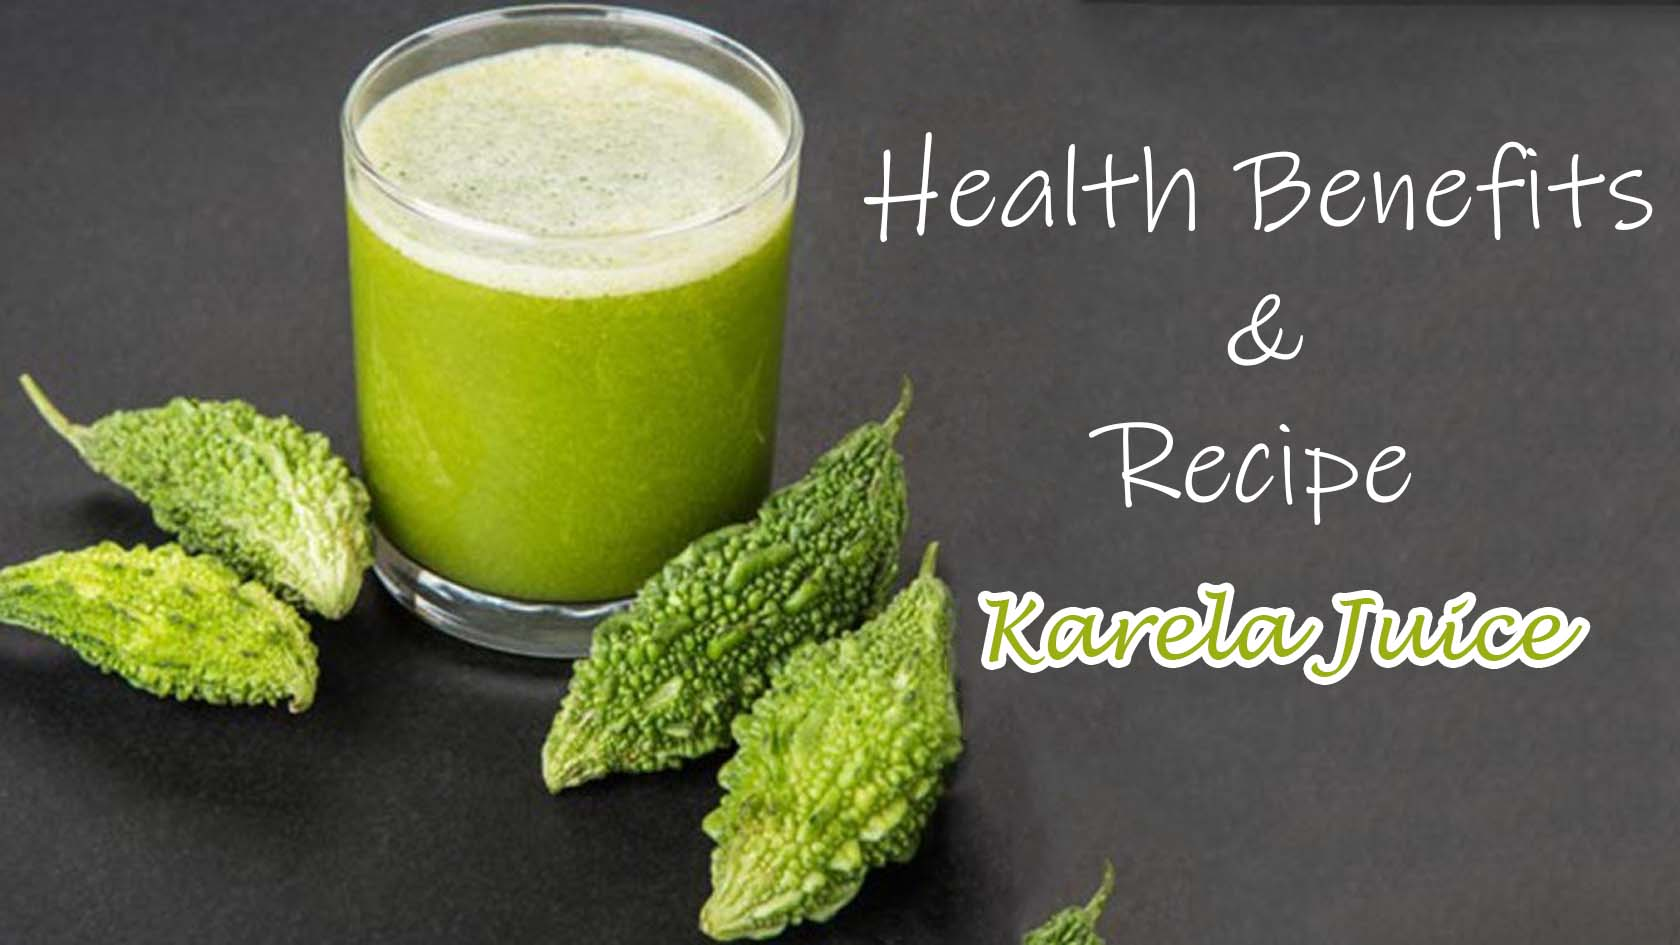 Health Benefits Of Karela Juice